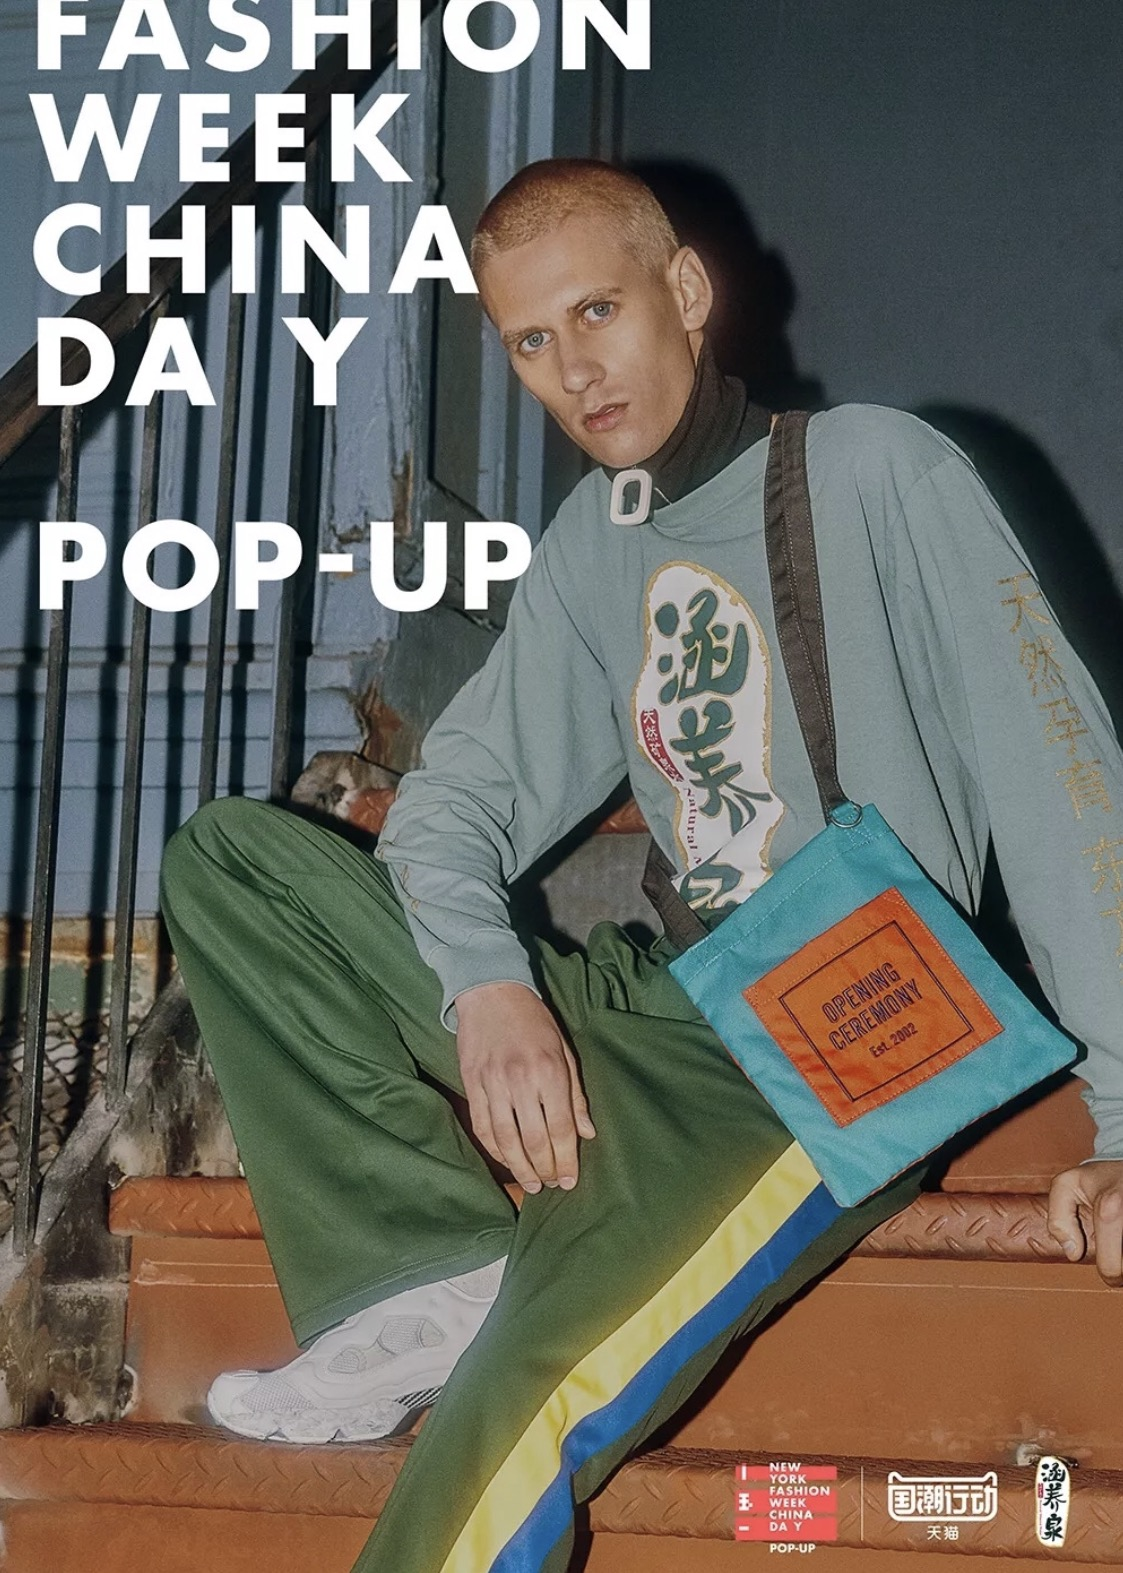 CHINA DAY CAMPAIGN